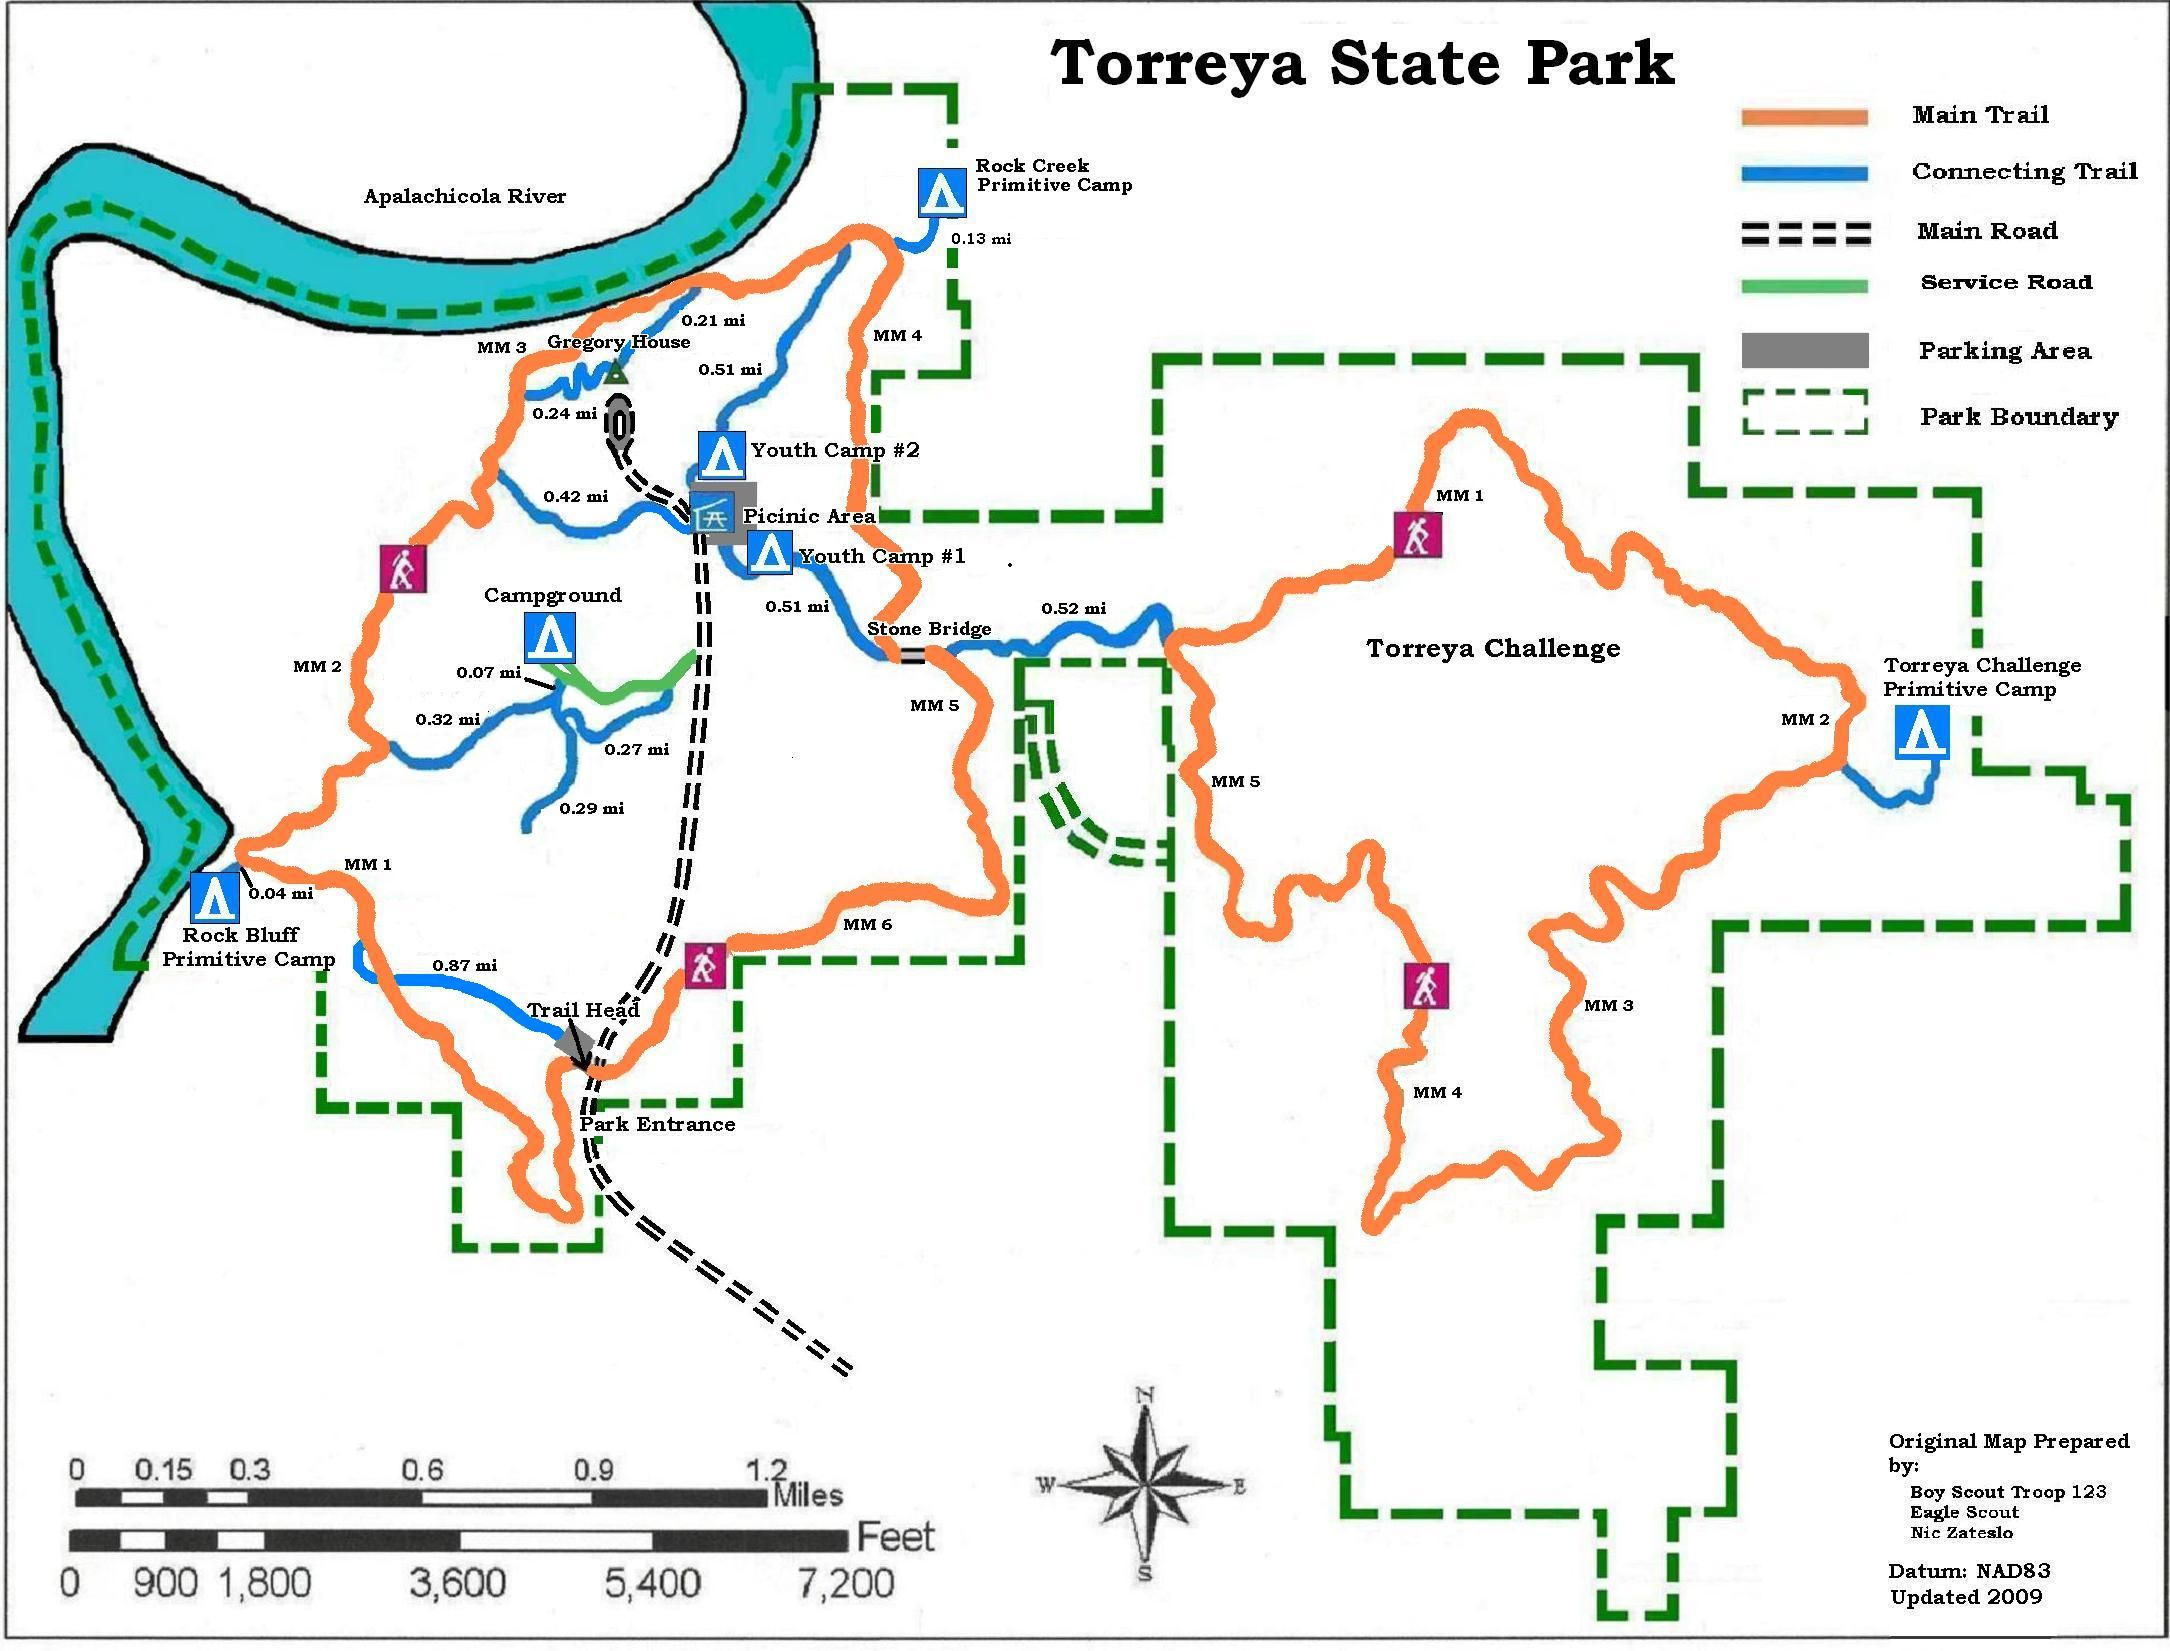 Apalachicola National Forest Campgrounds Map Of Torreya State Park